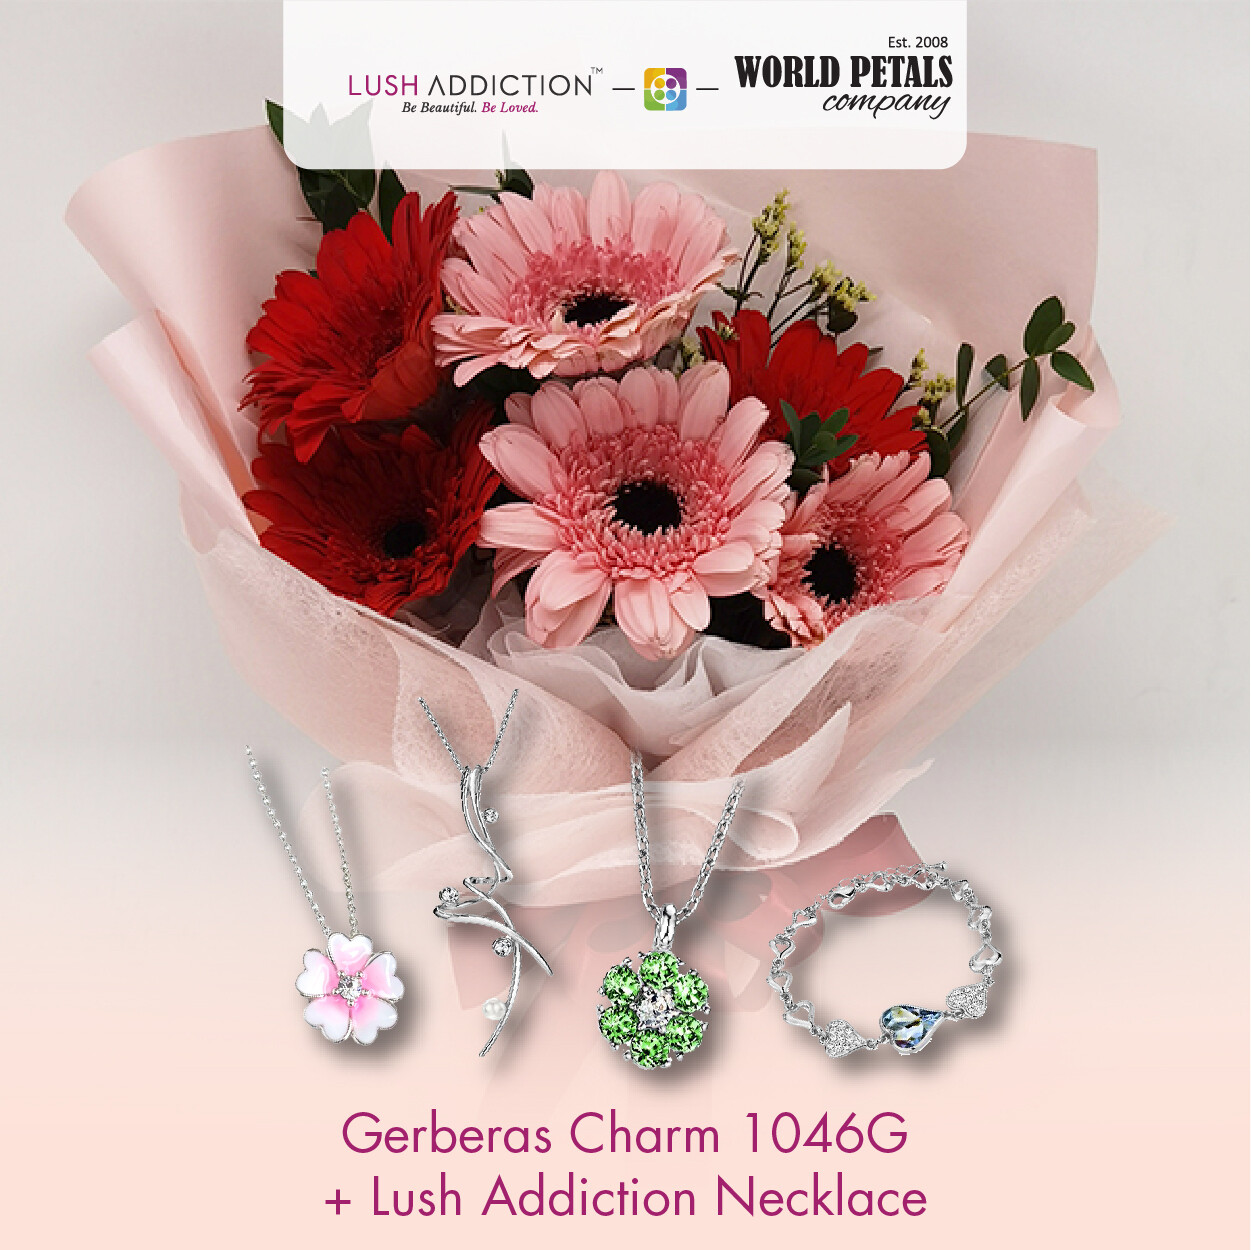 Gerberas Charm + Lush Addiction Necklace (By: World Petals Florist from KL)